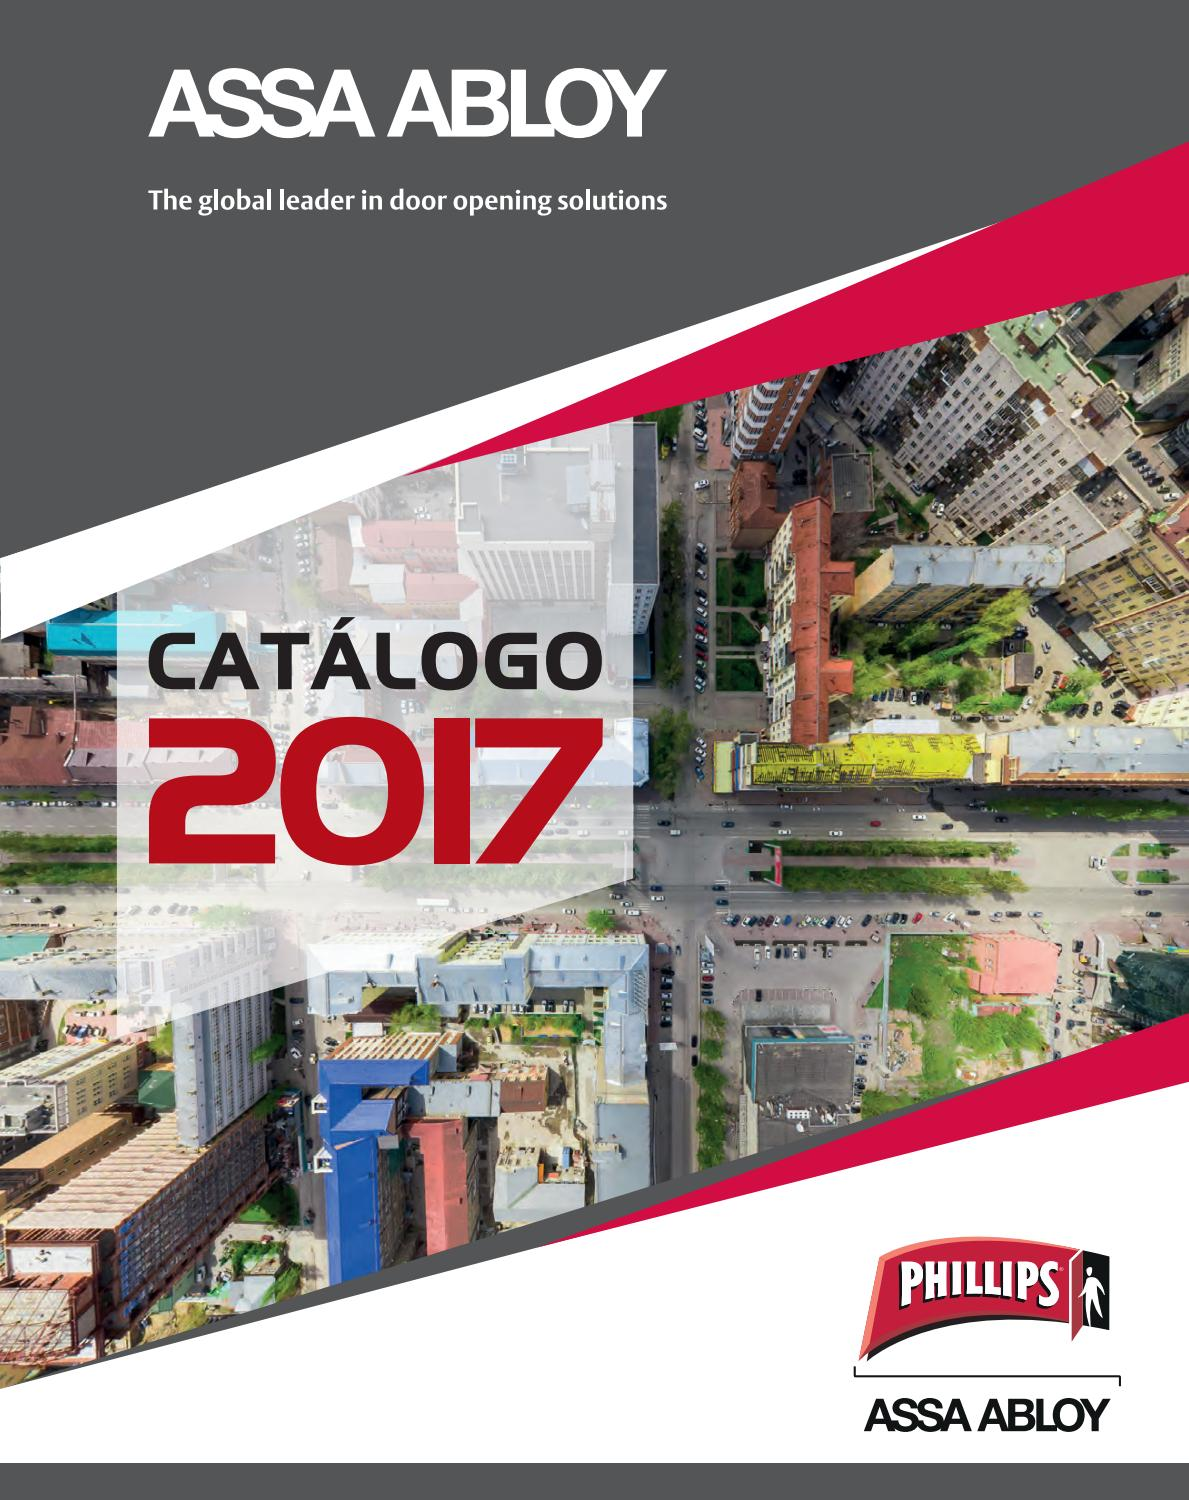 Catalogo phillips 2017 by assa abloy m xico issuu for Puntos galp catalogo 2017